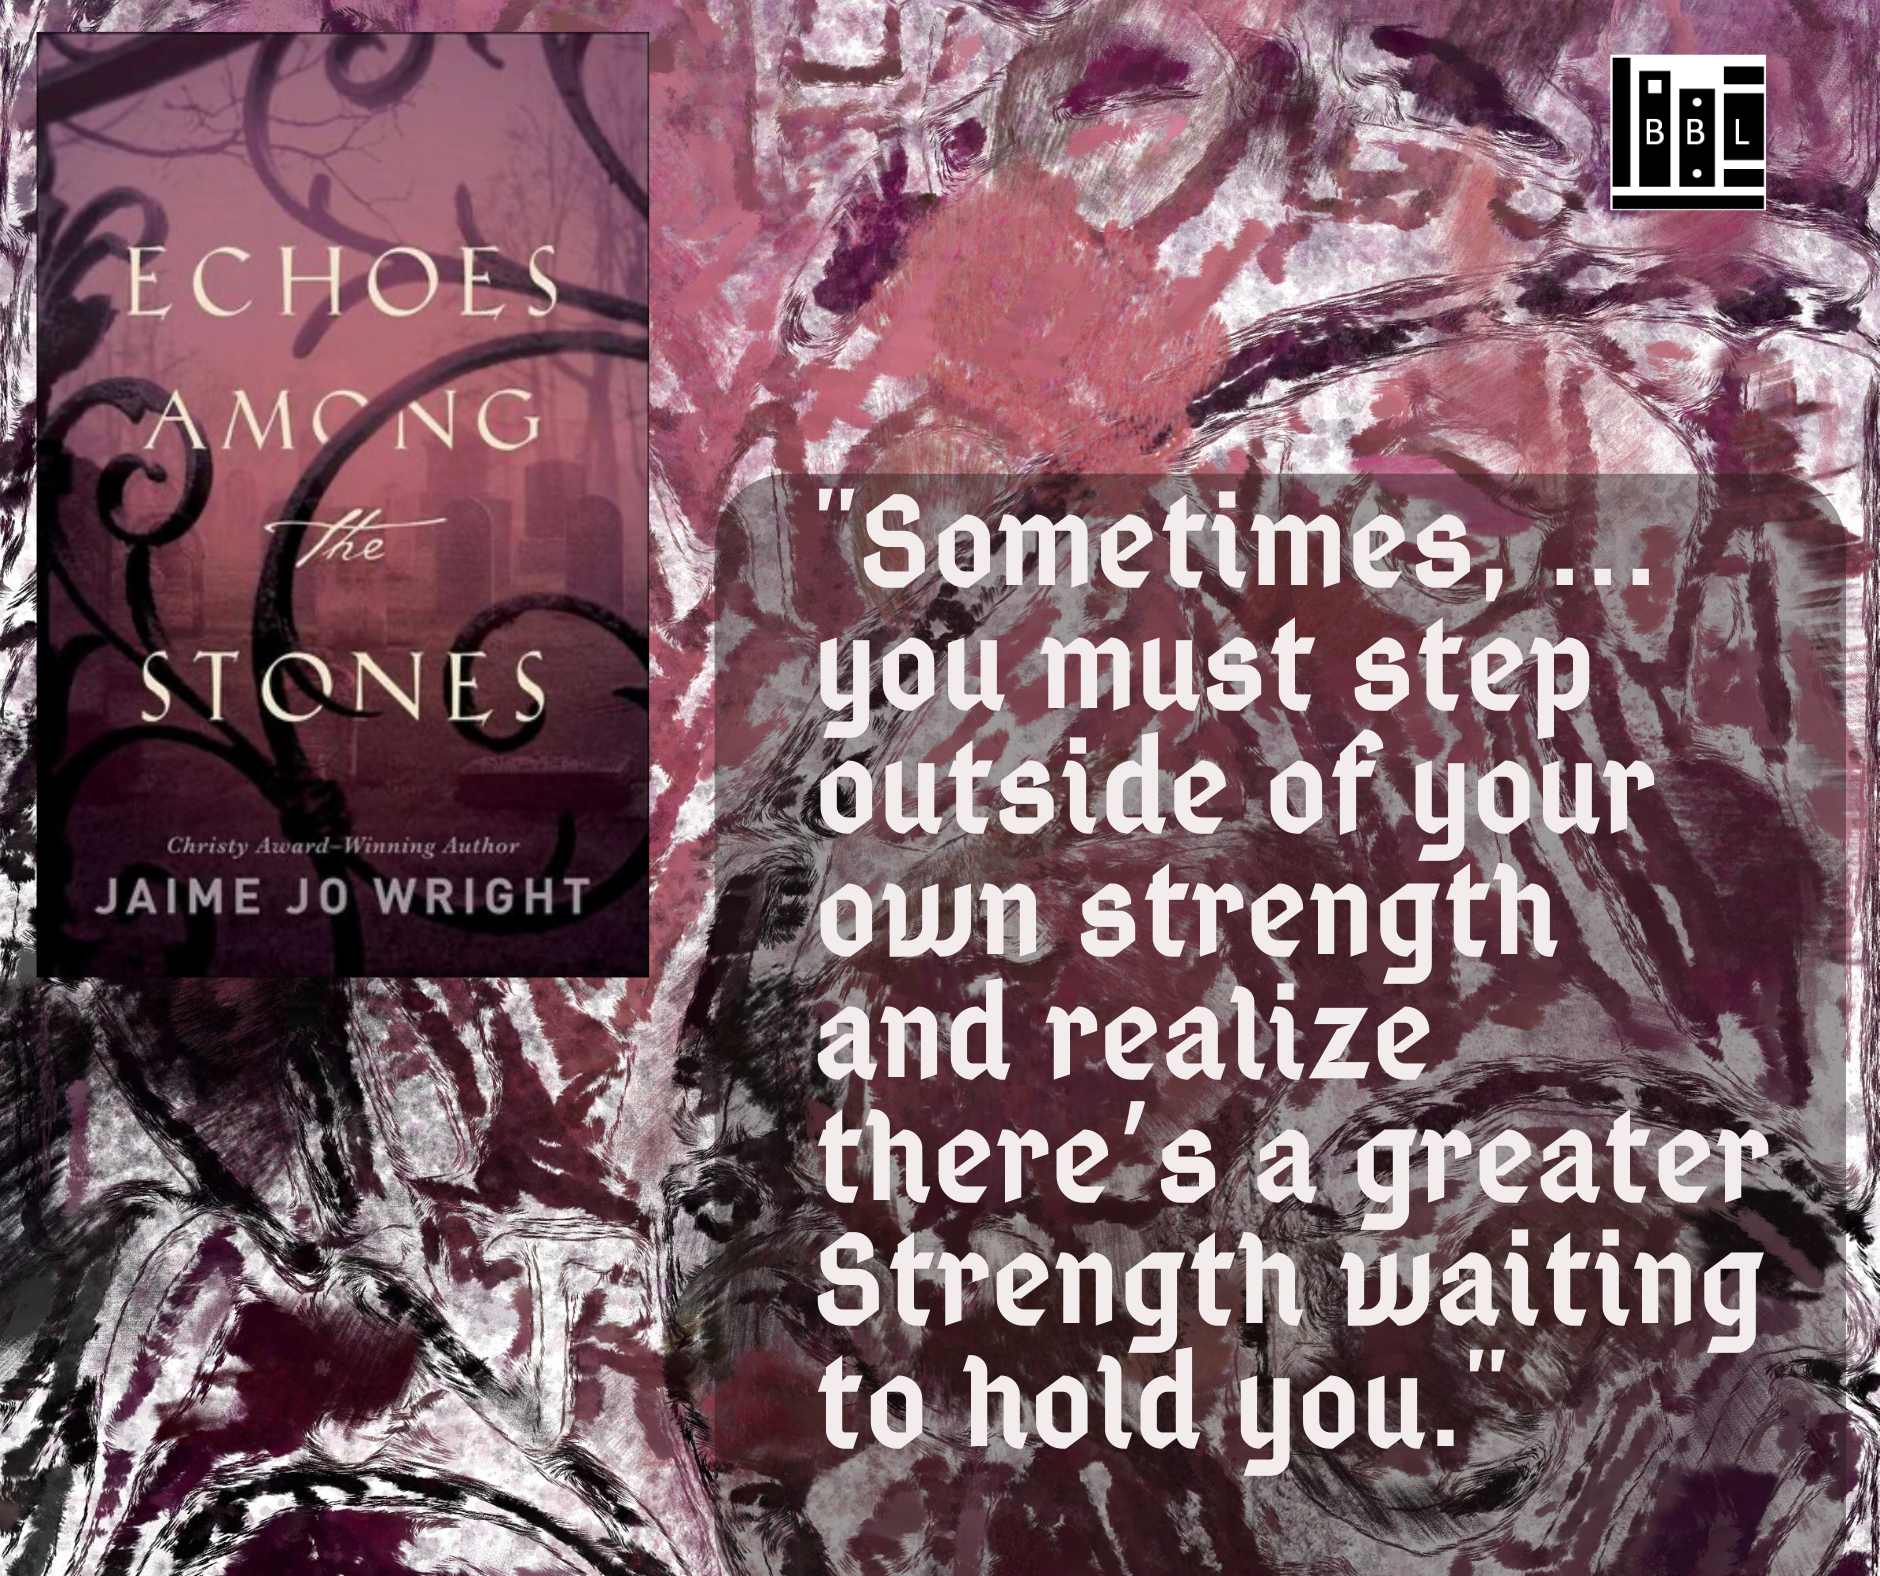 Echoes Among the Stones 1